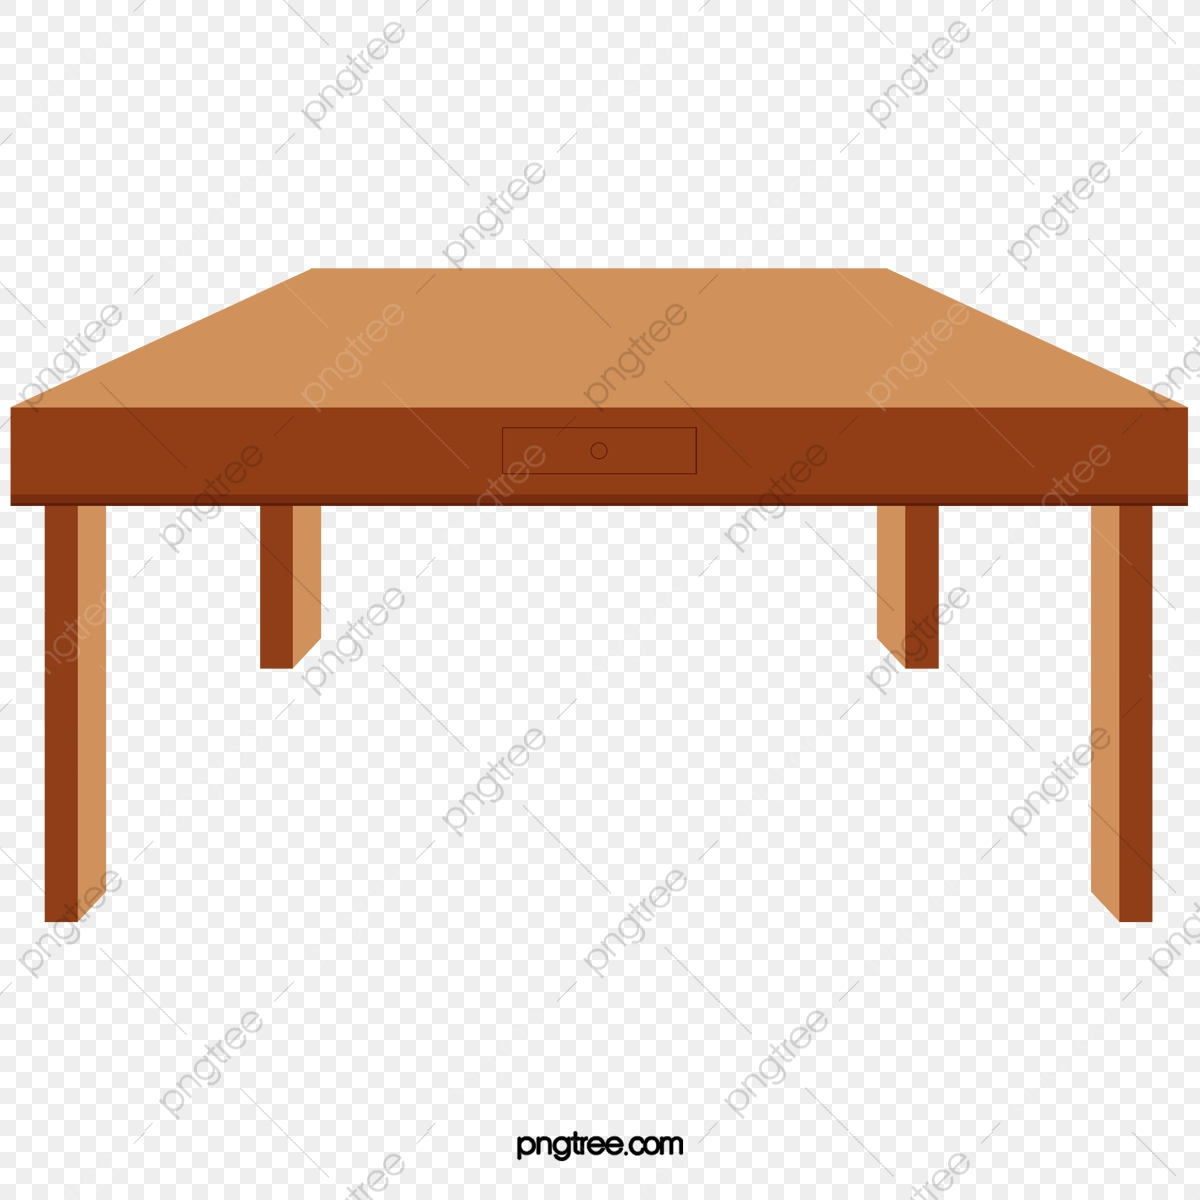 Wooden Table, Cartoon, Table PNG Transparent Clipart Image and PSD.